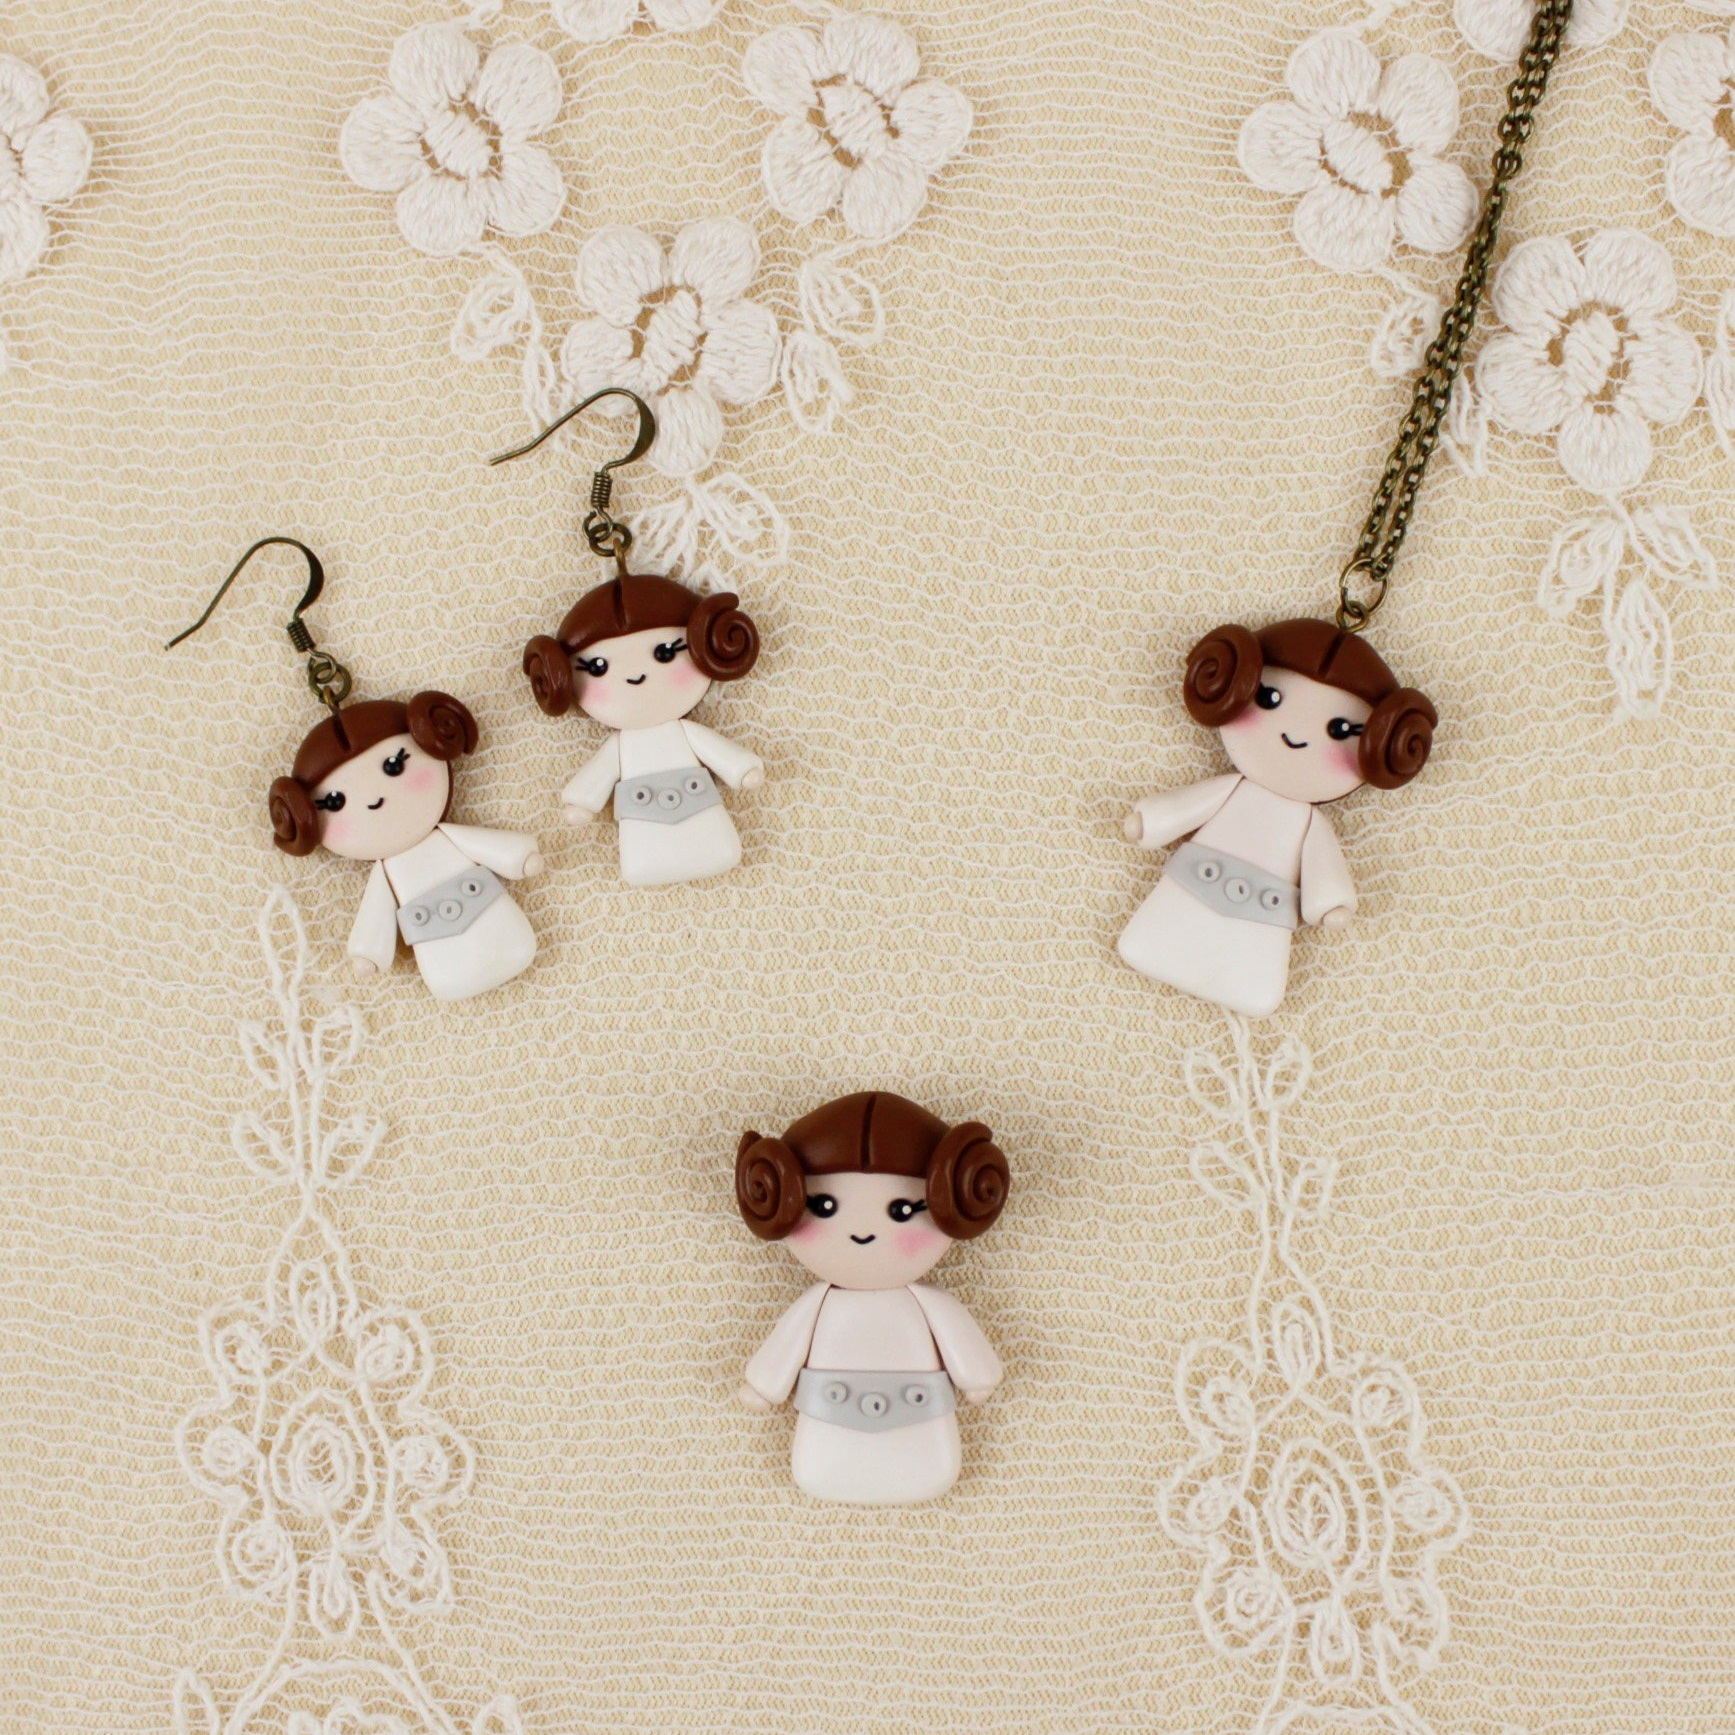 Star Wars Princess Leia Earrings and Necklace by MagicStuffStore on Etsy